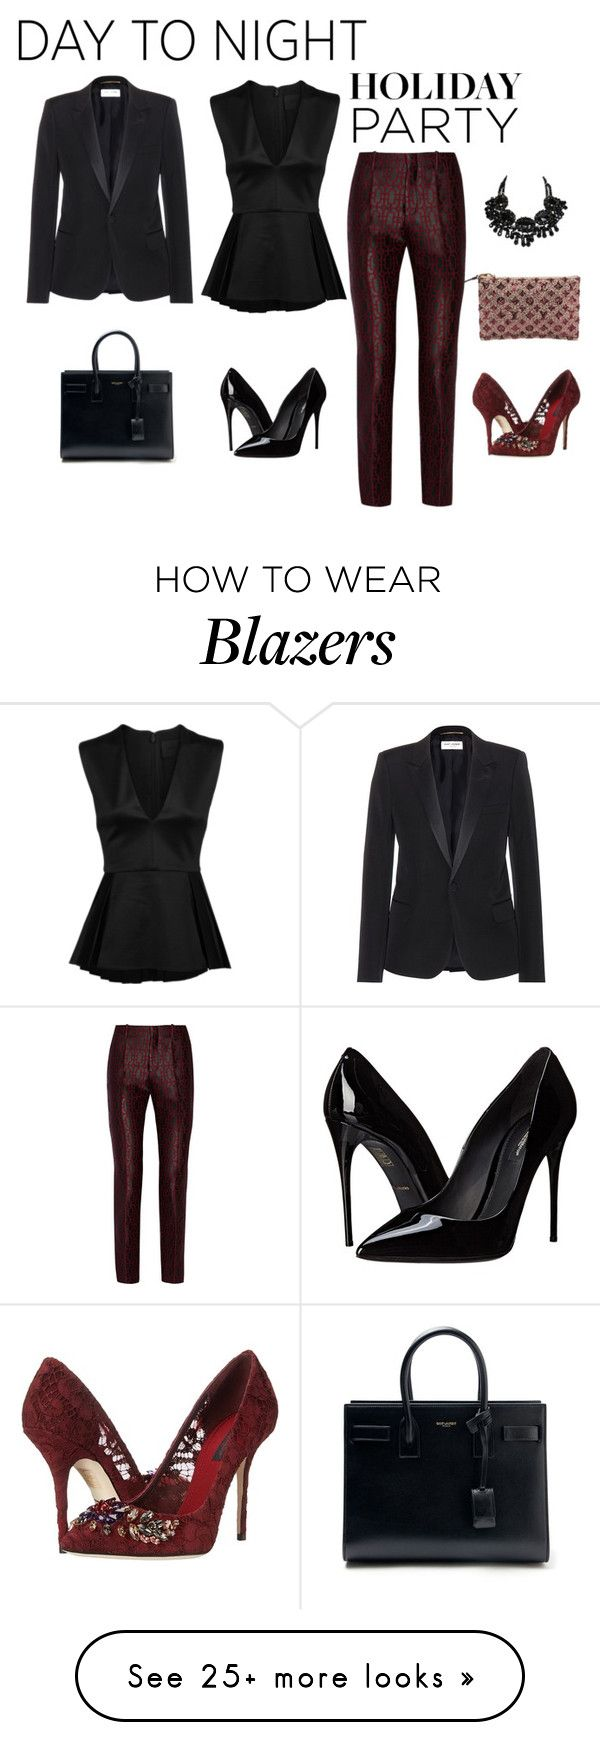 """Day to Night: Holiday Party"" by leahbprice on Polyvore featuring Yves Saint Laurent, Louis Vuitton, Cushnie Et Ochs, Gucci, Dolce&Gabbana, holidaystyle and HolidayParty"